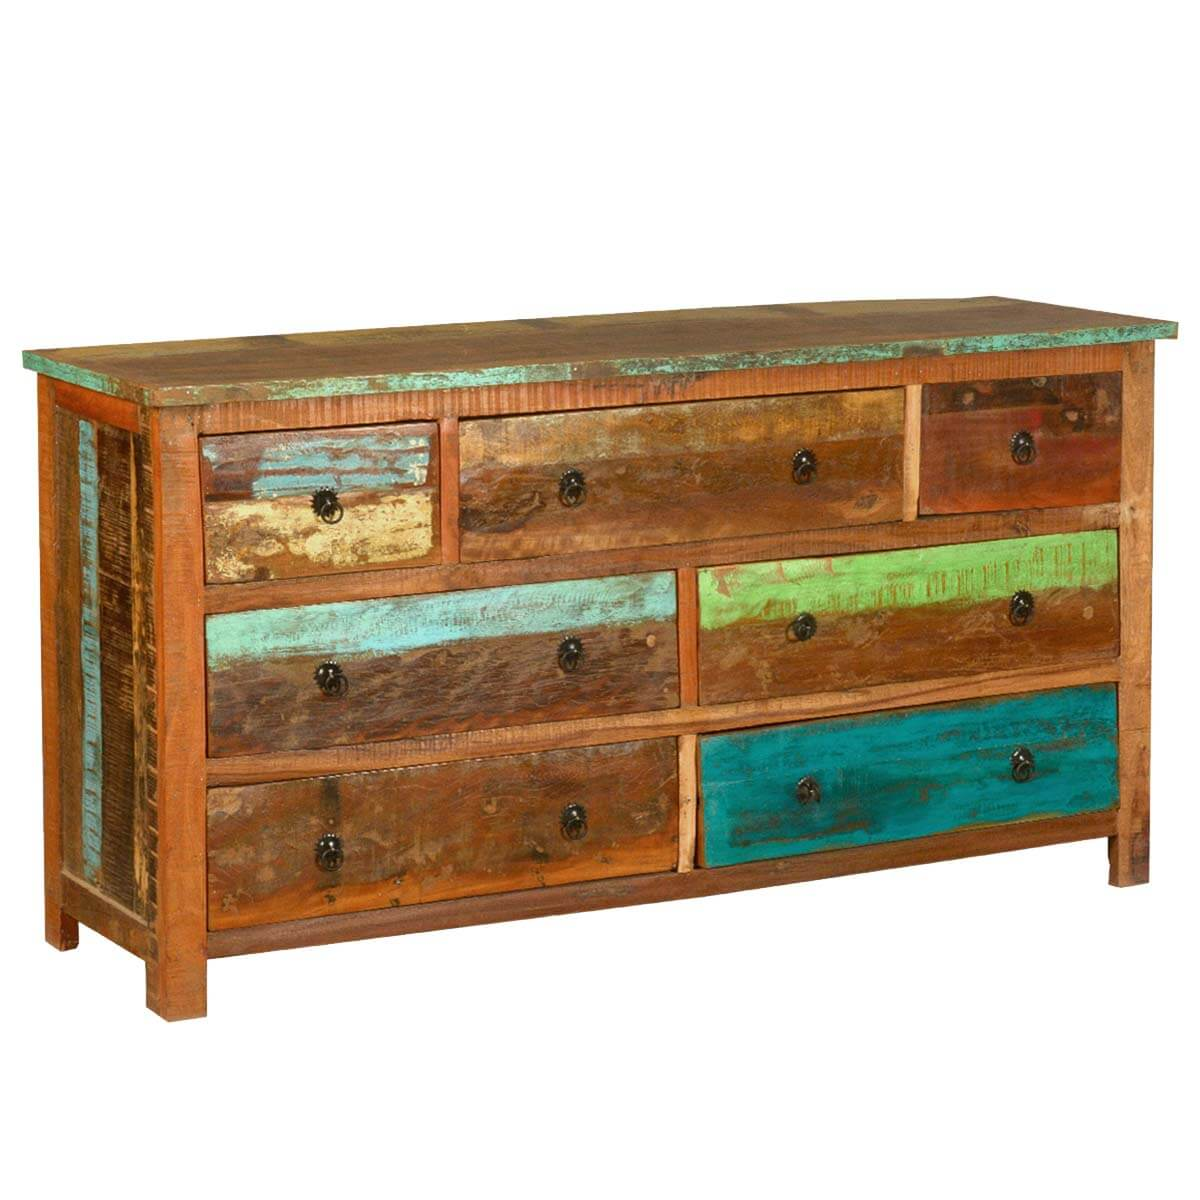 Sierra Rustic Reclaimed Wood Dresser Chest with 7 Drawer - Rustic Reclaimed Wood Dresser Chest With 7 Drawer